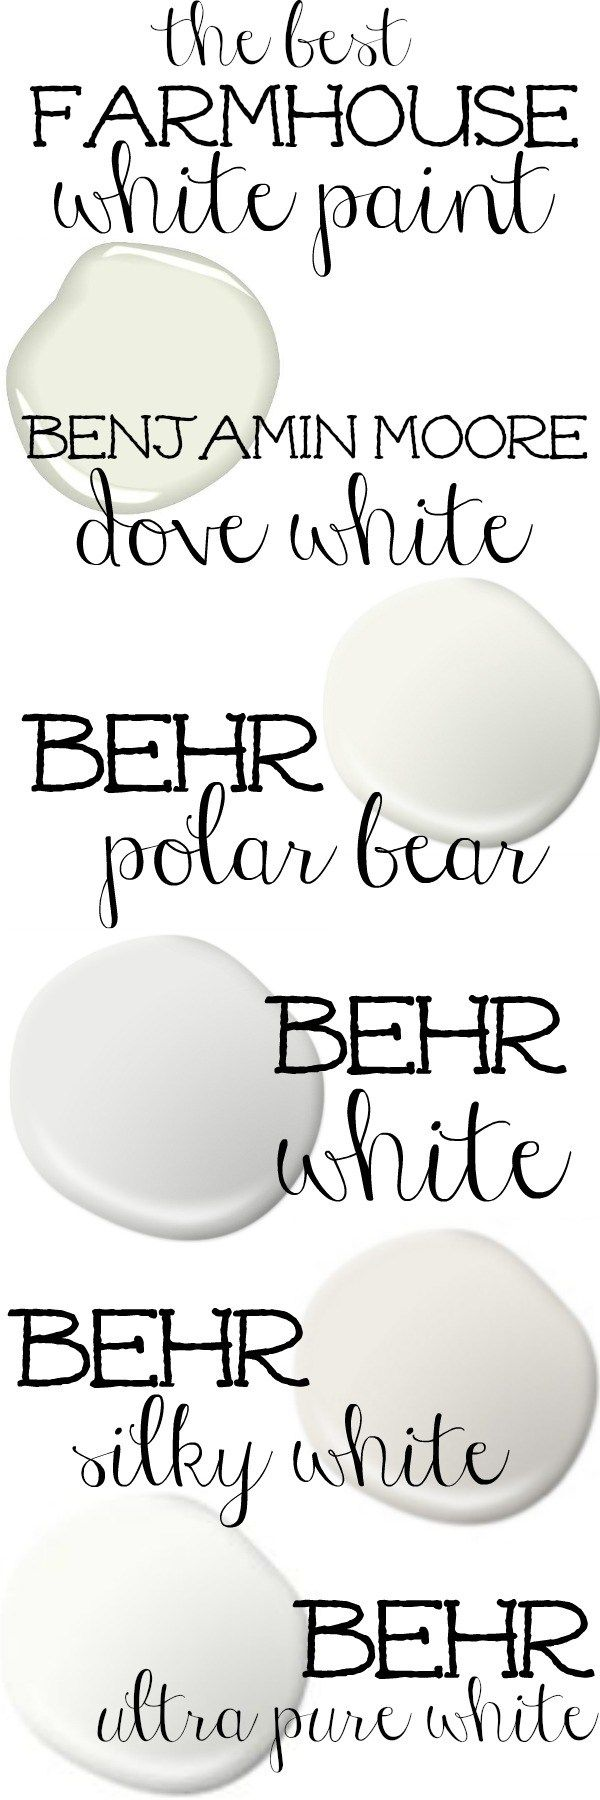 Pure white bathroom scheme everything is white at its finest - The Best White Paint Colors For A Farmhouse Exterior Great For Farmhouse Cottage Style